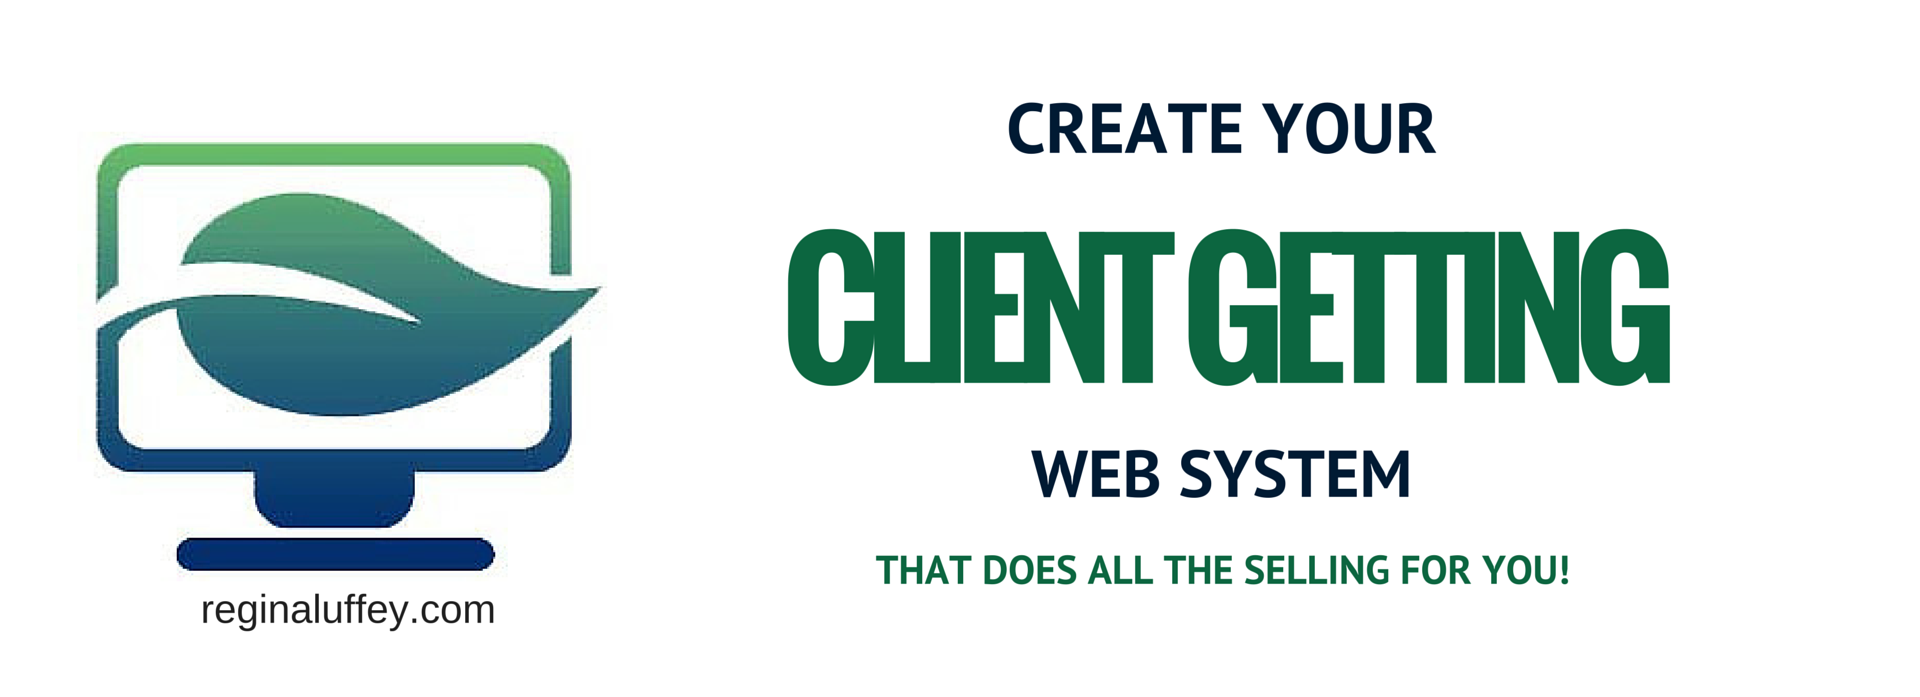 Create Your Client Getting Web System